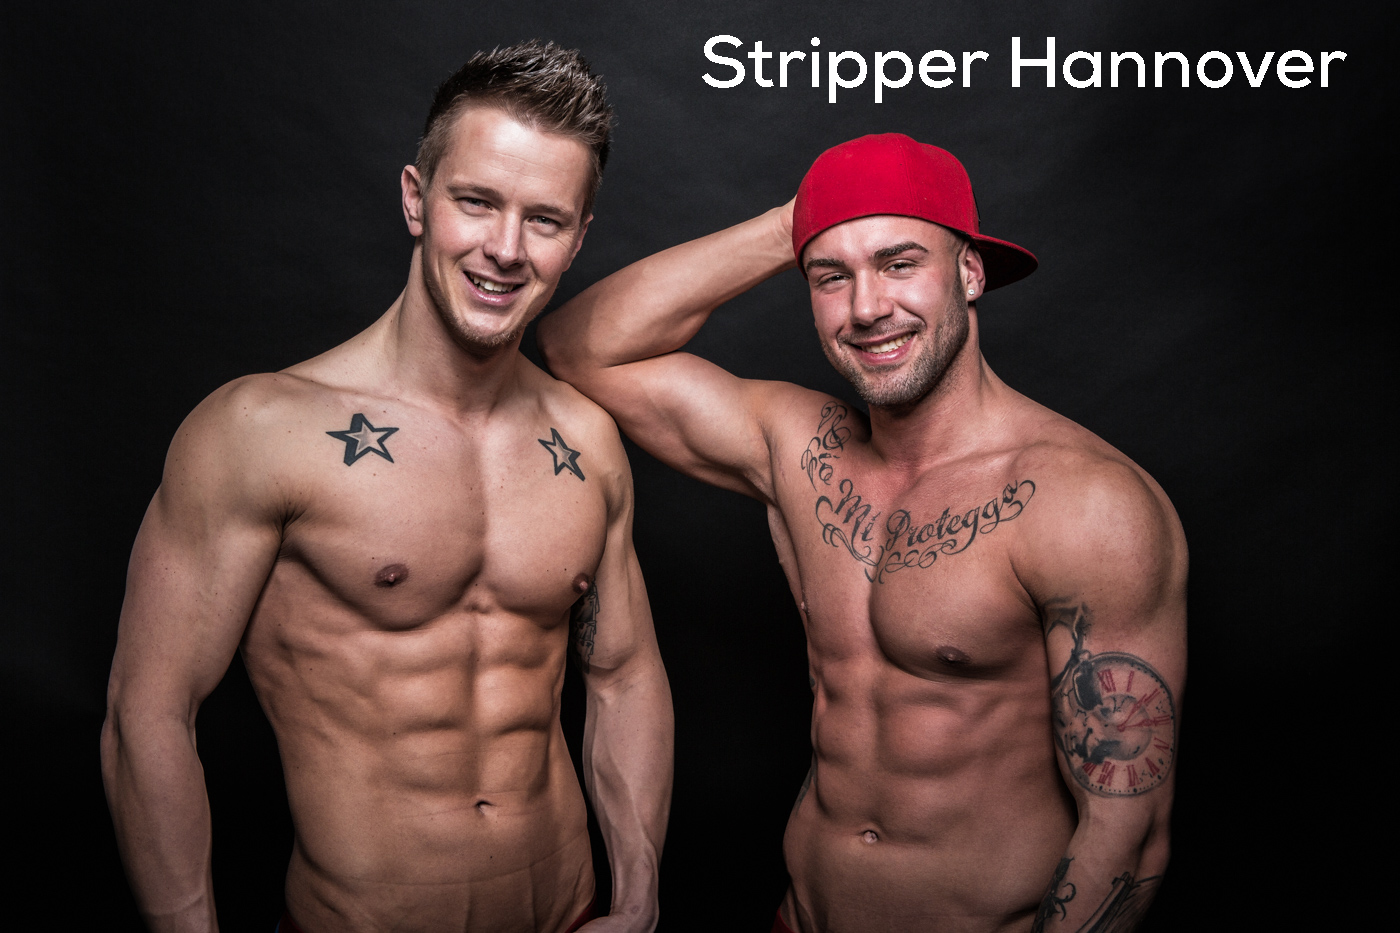 stripper hannover